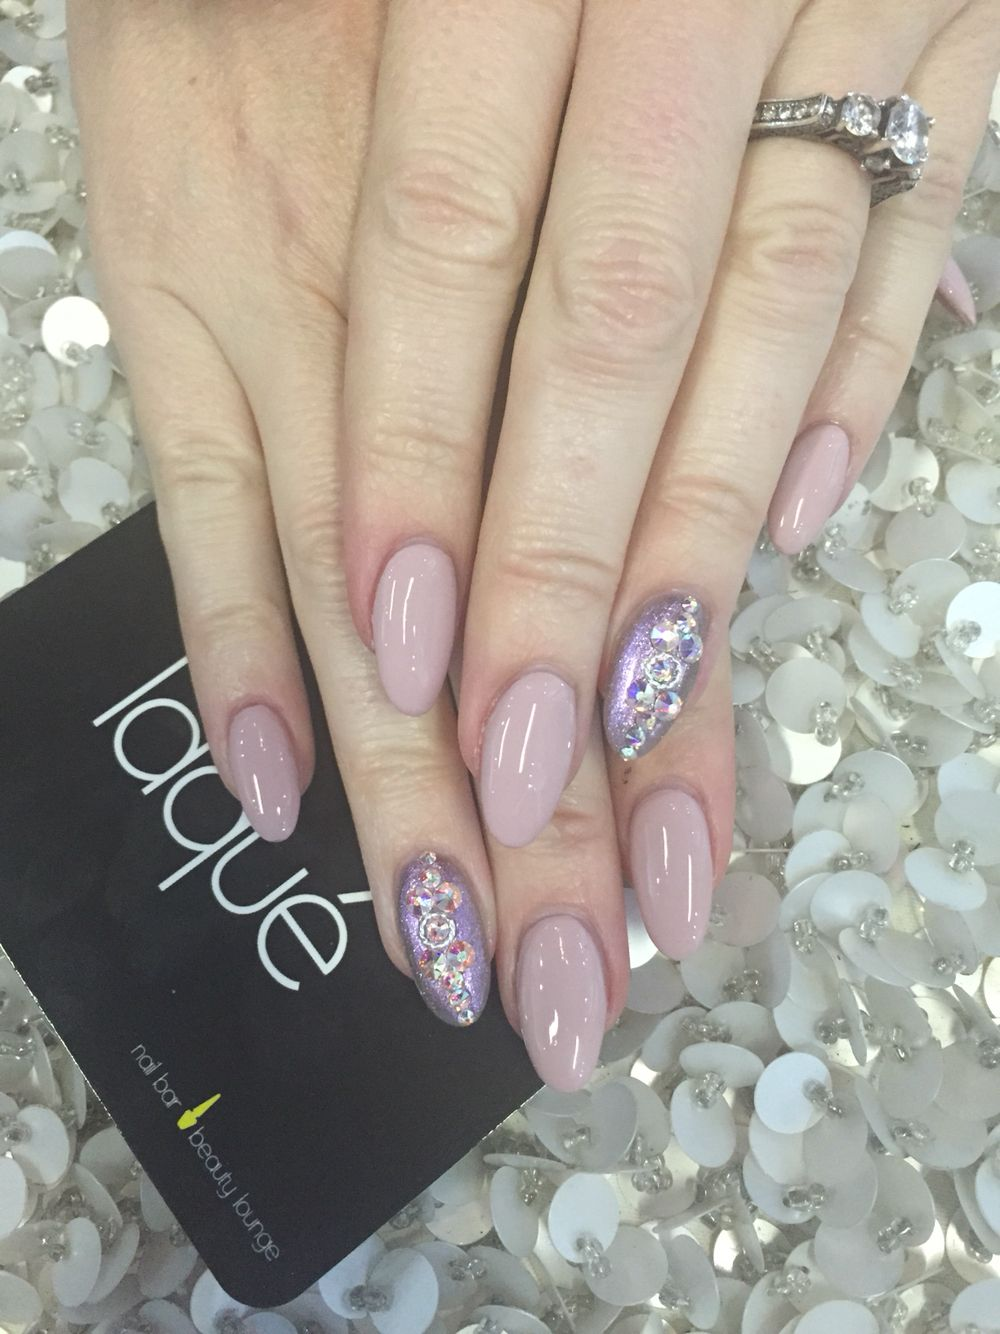 My almond shape nails with swarovski crystals -Laque Nail Bar ...